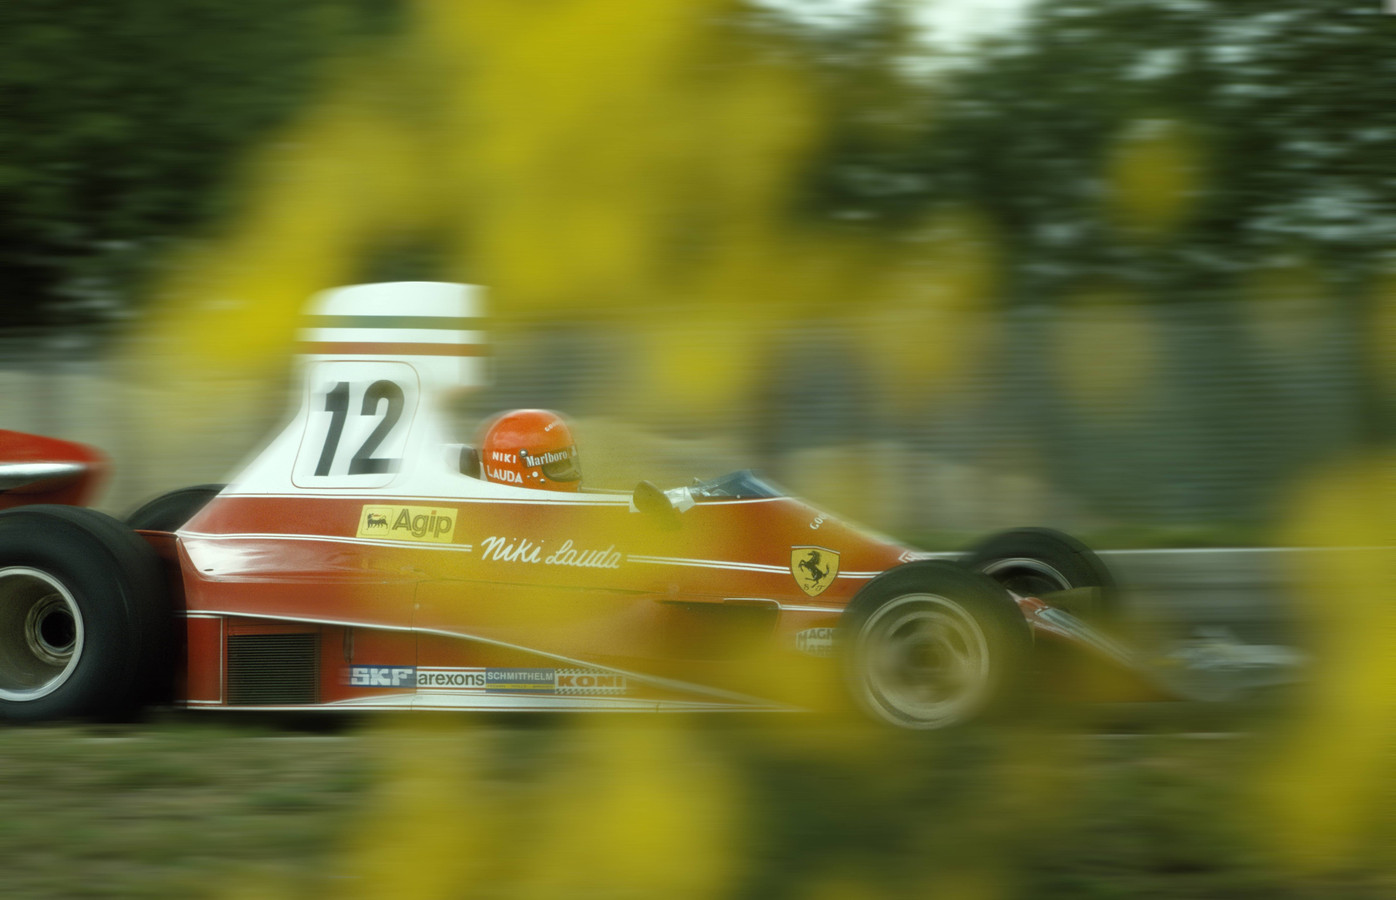 Niki Lauda in de Grand Prix van België in 1975